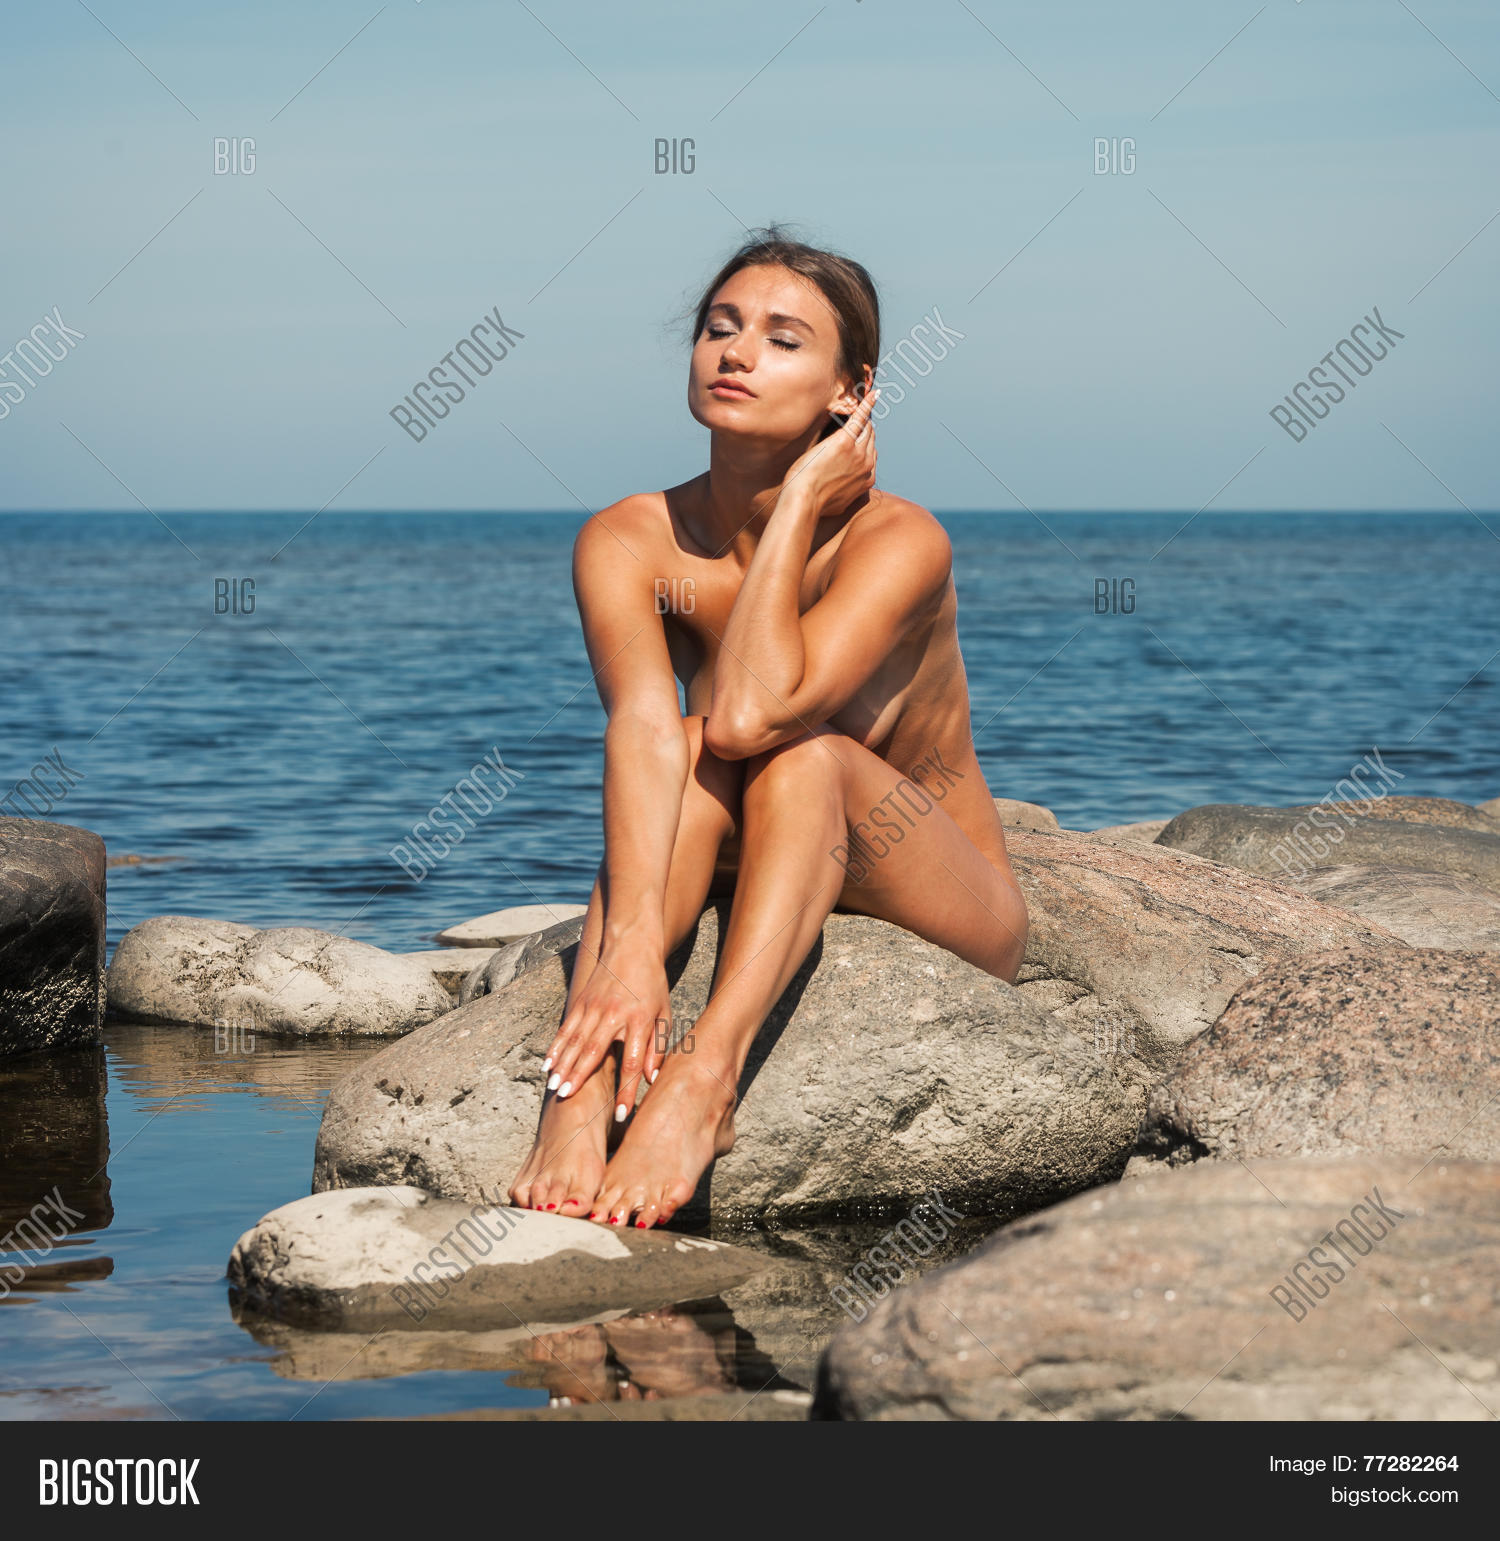 Commit Beautiful young nude